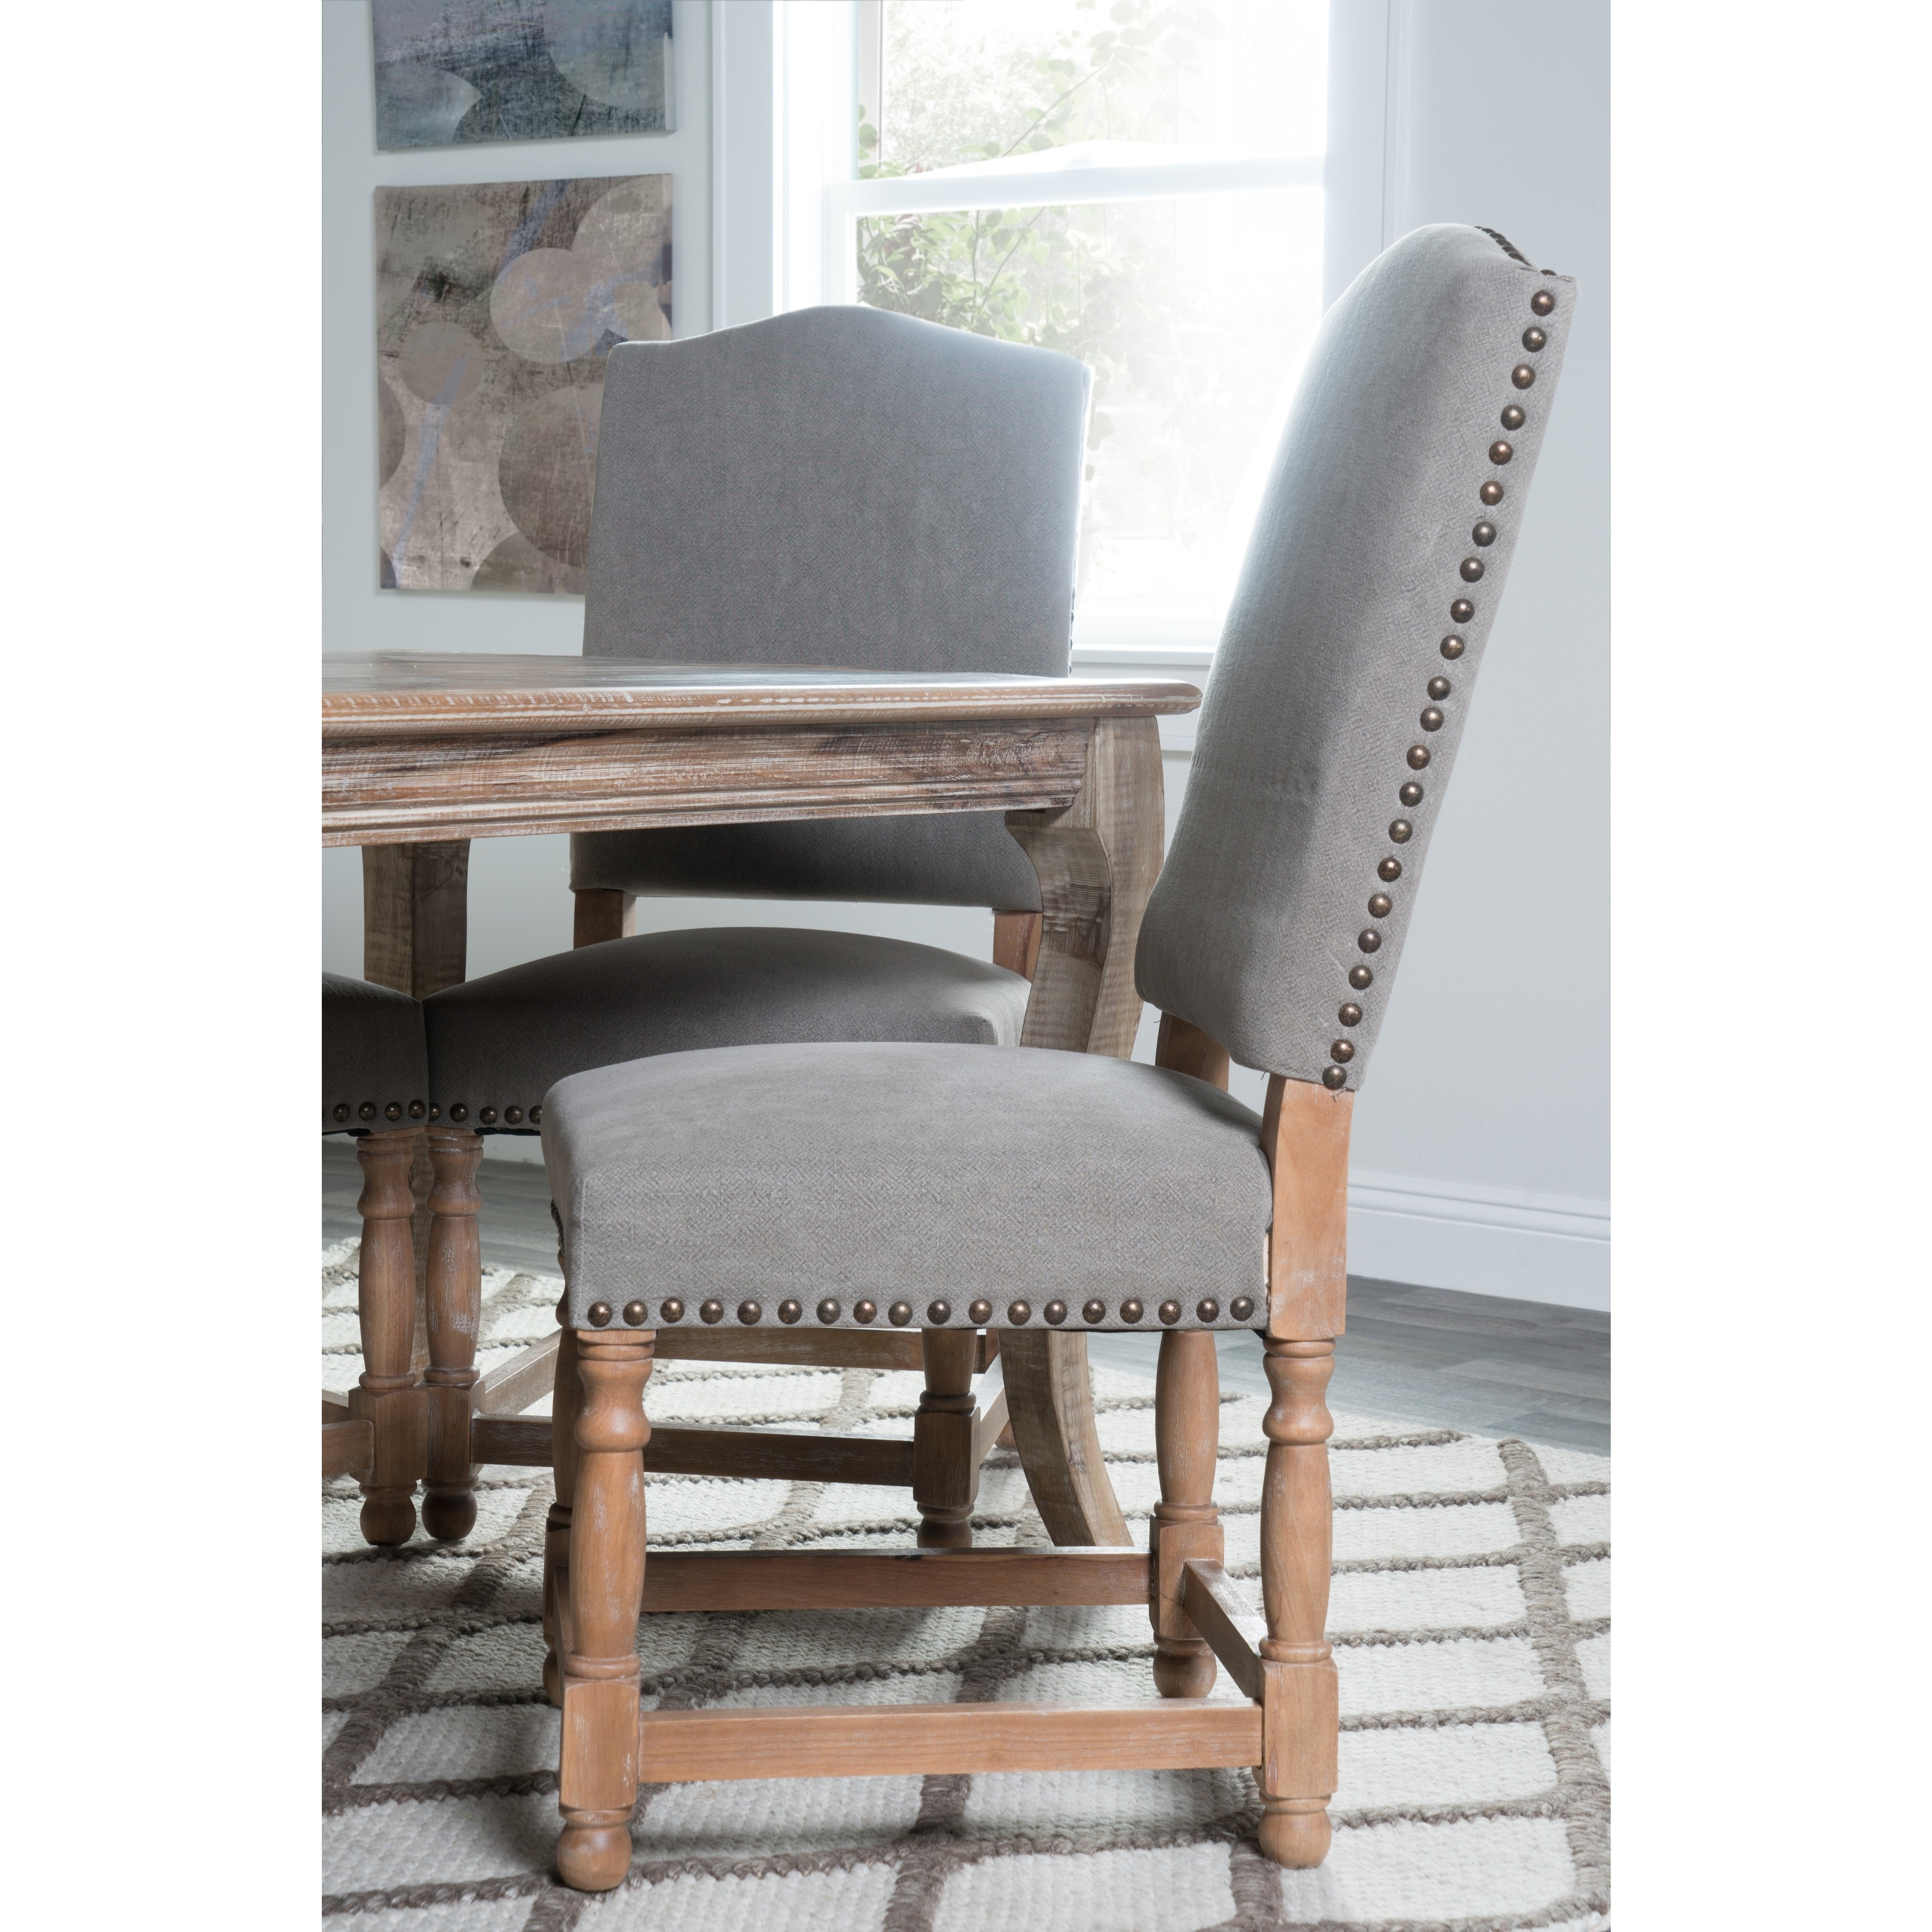 Kosas Home Redford Dining Chair Stone Wash Light Grey Free Shipping Today 7644573